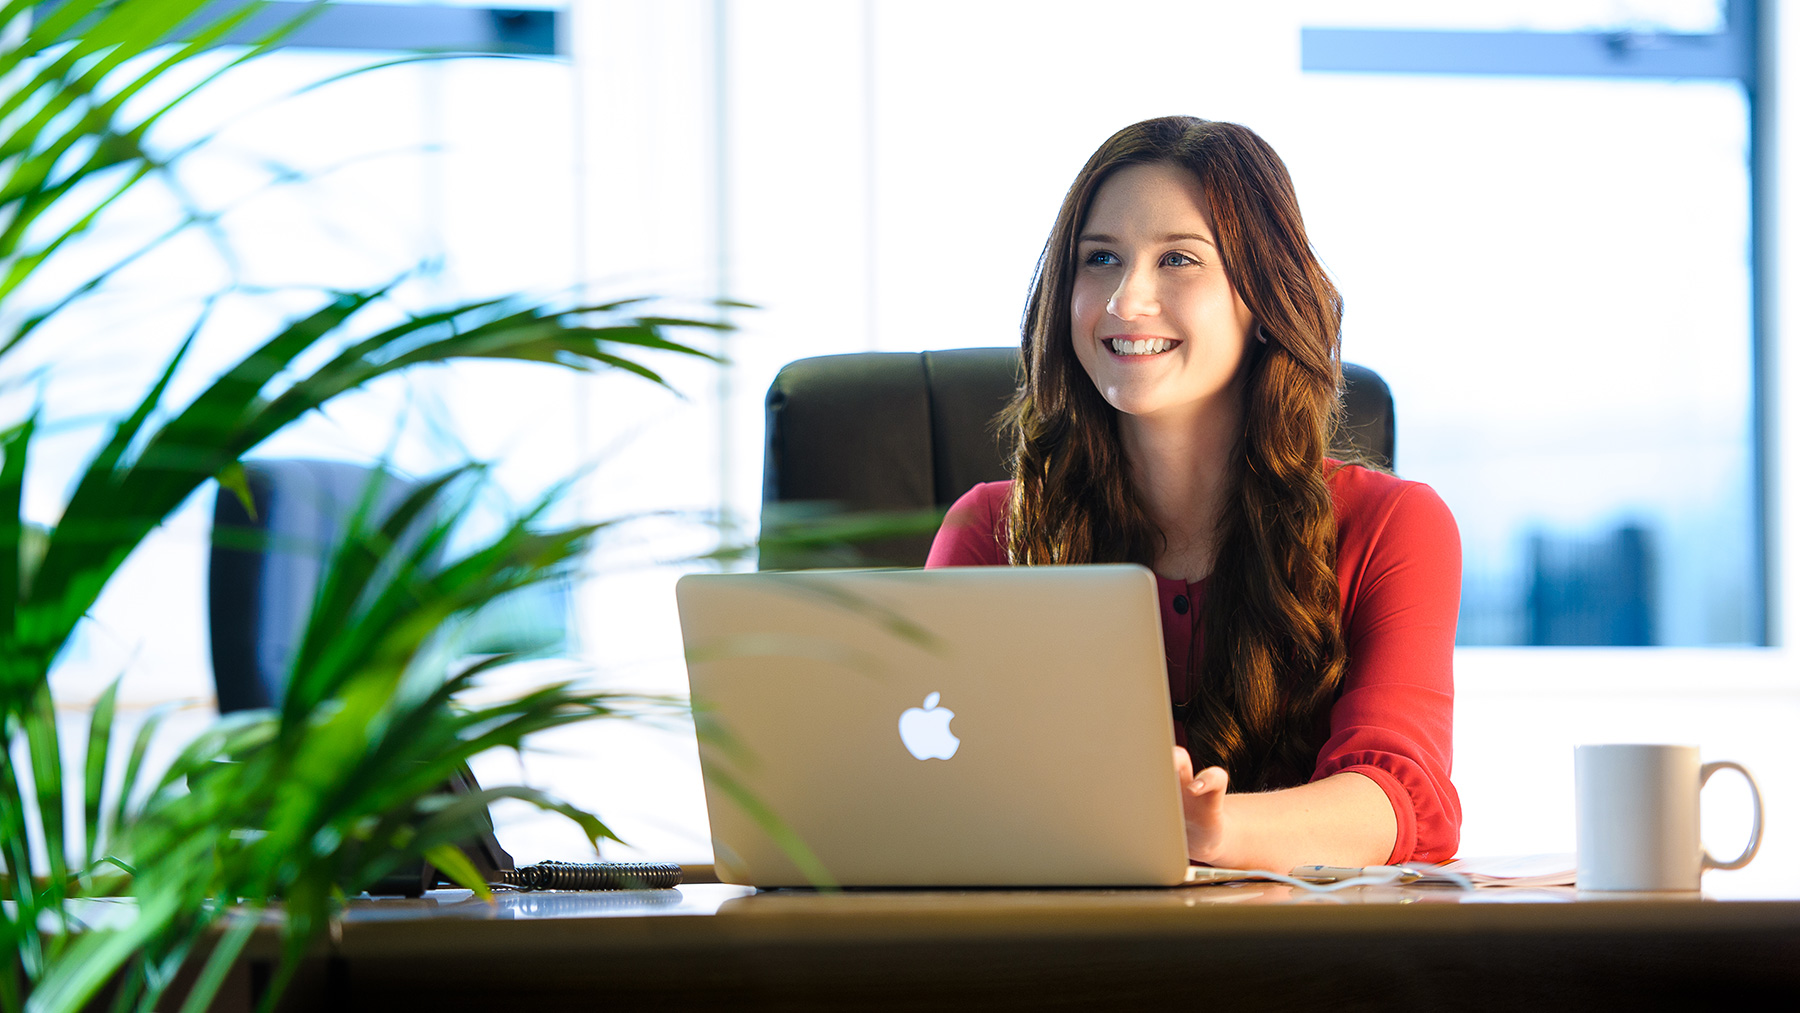 young women in a red top works happily at her mac with mug on the desk